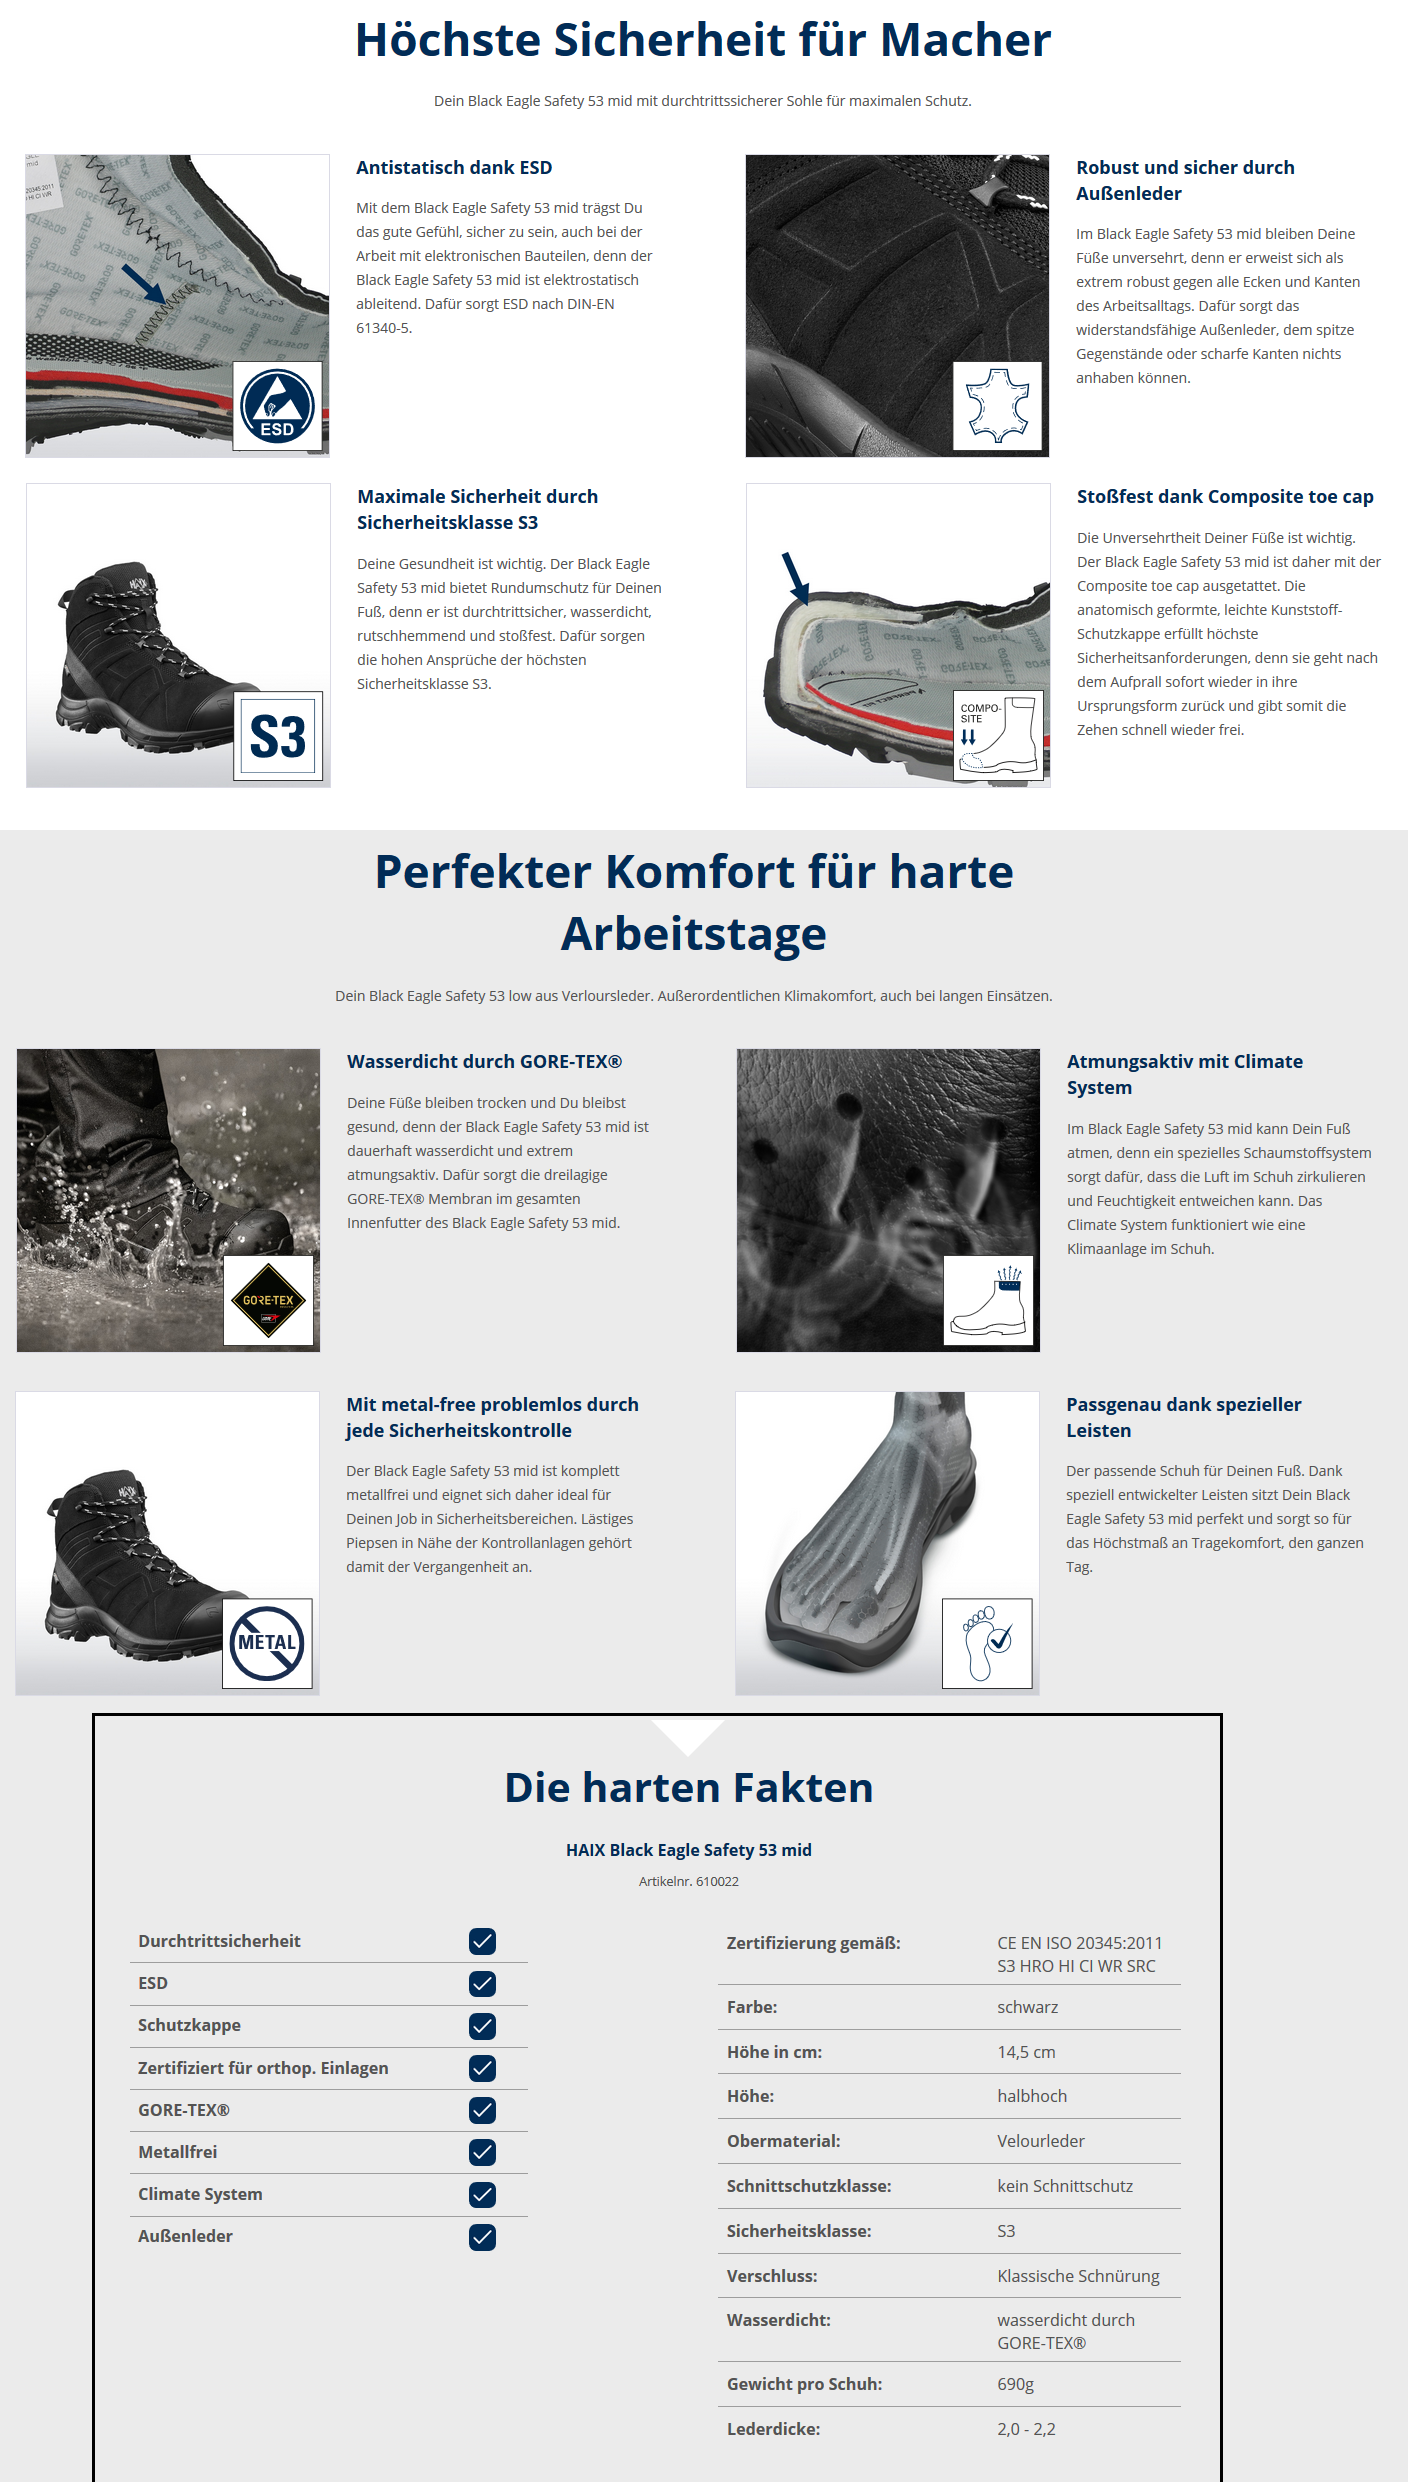 http://www.shop-rettungsdienst.de/media/image/ISOETC/Infotexte%20Black%20Eagly%20Safety%2053%20Mid.png